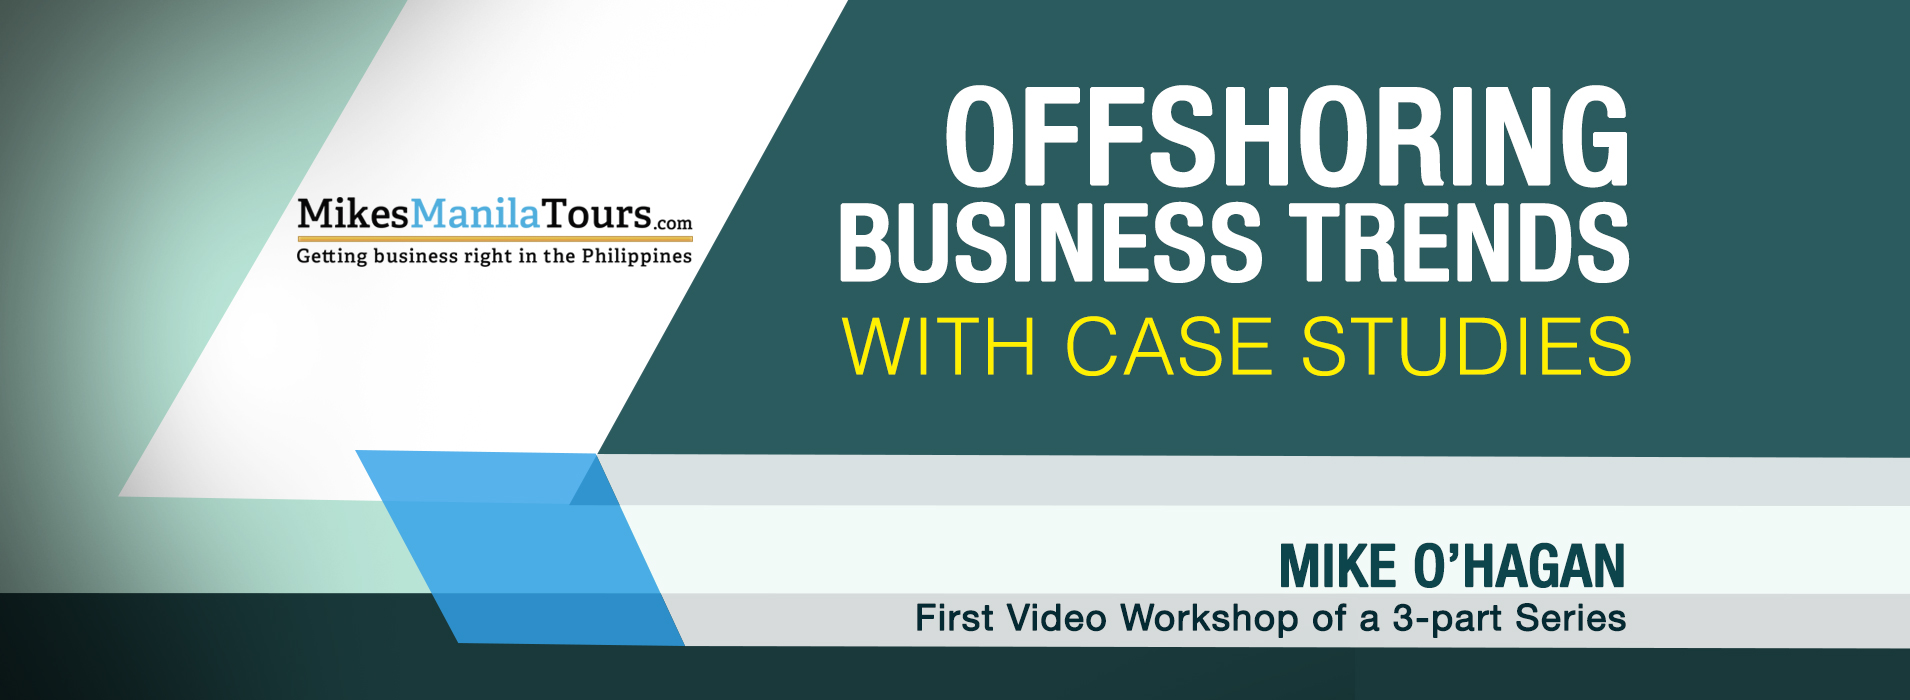 offshoring case studies